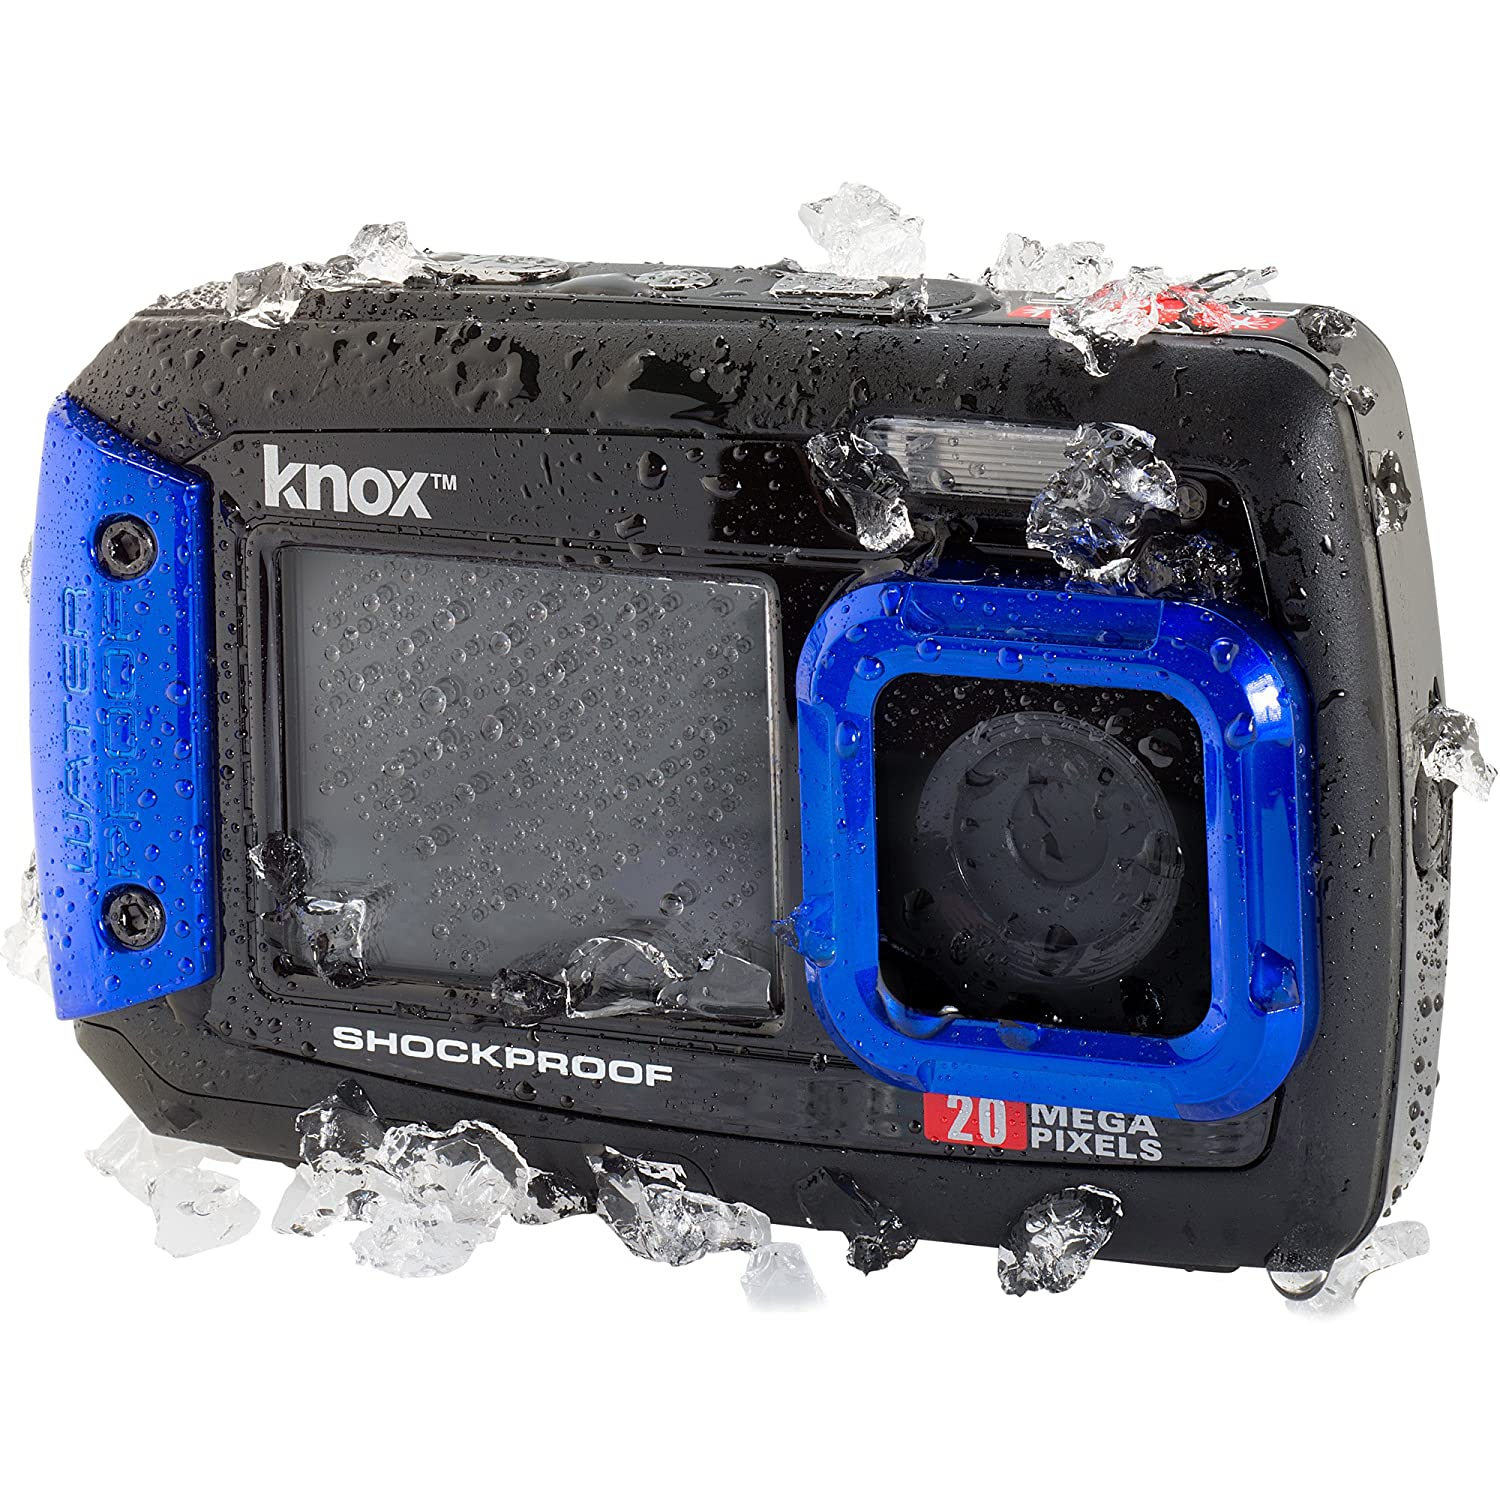 Amazon.com : Knox Dual LCD Display 20MP Waterproof & Shockproof ...